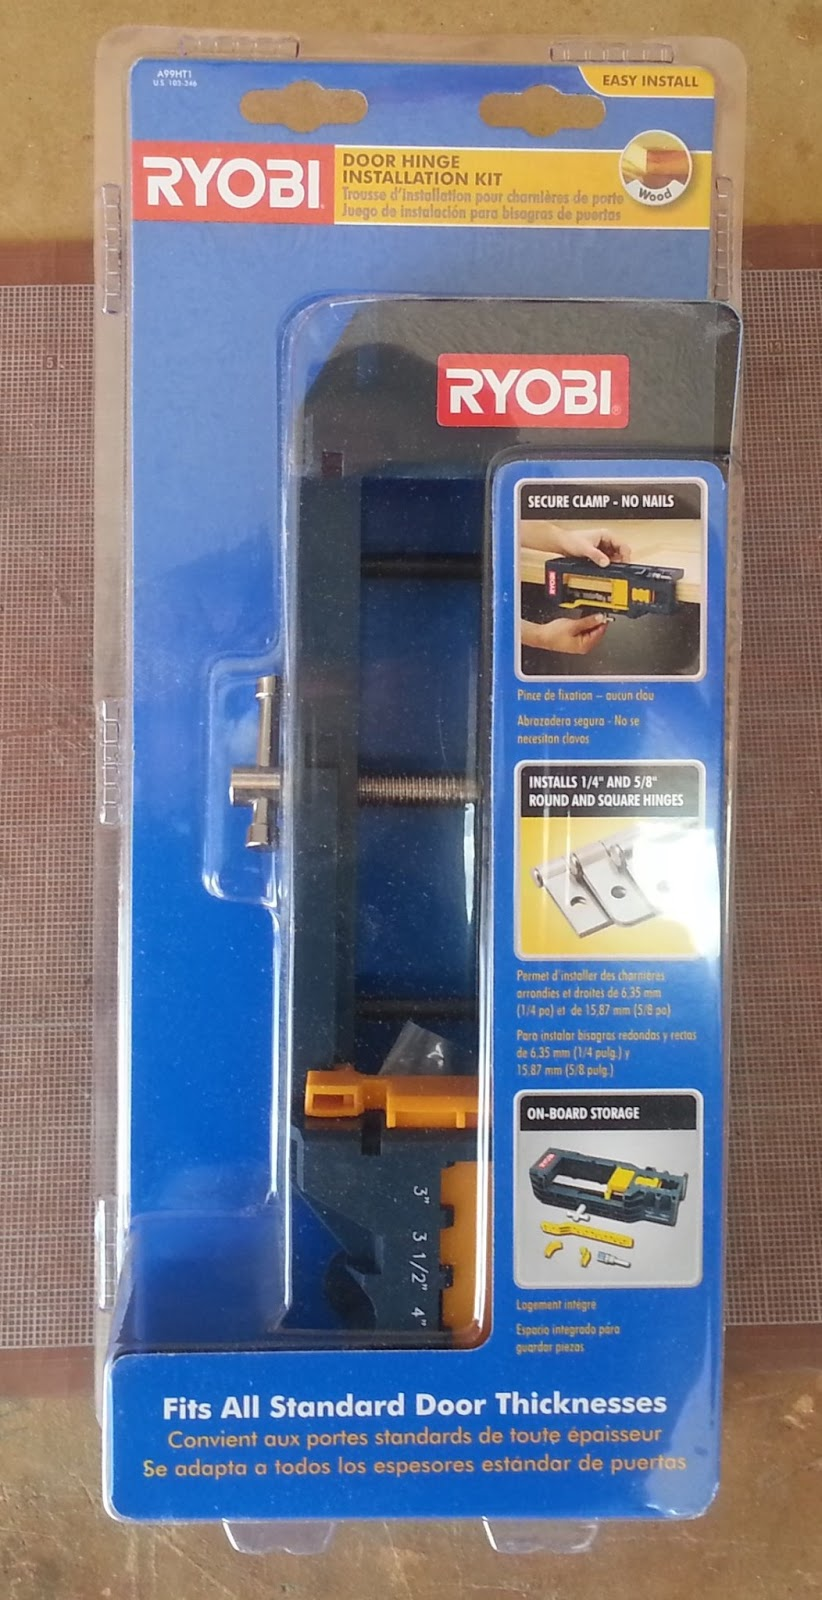 Review Ryobi Door Hinge Template & Review: Ryobi Door Hinge Template \u2014 AZ DIY Guy